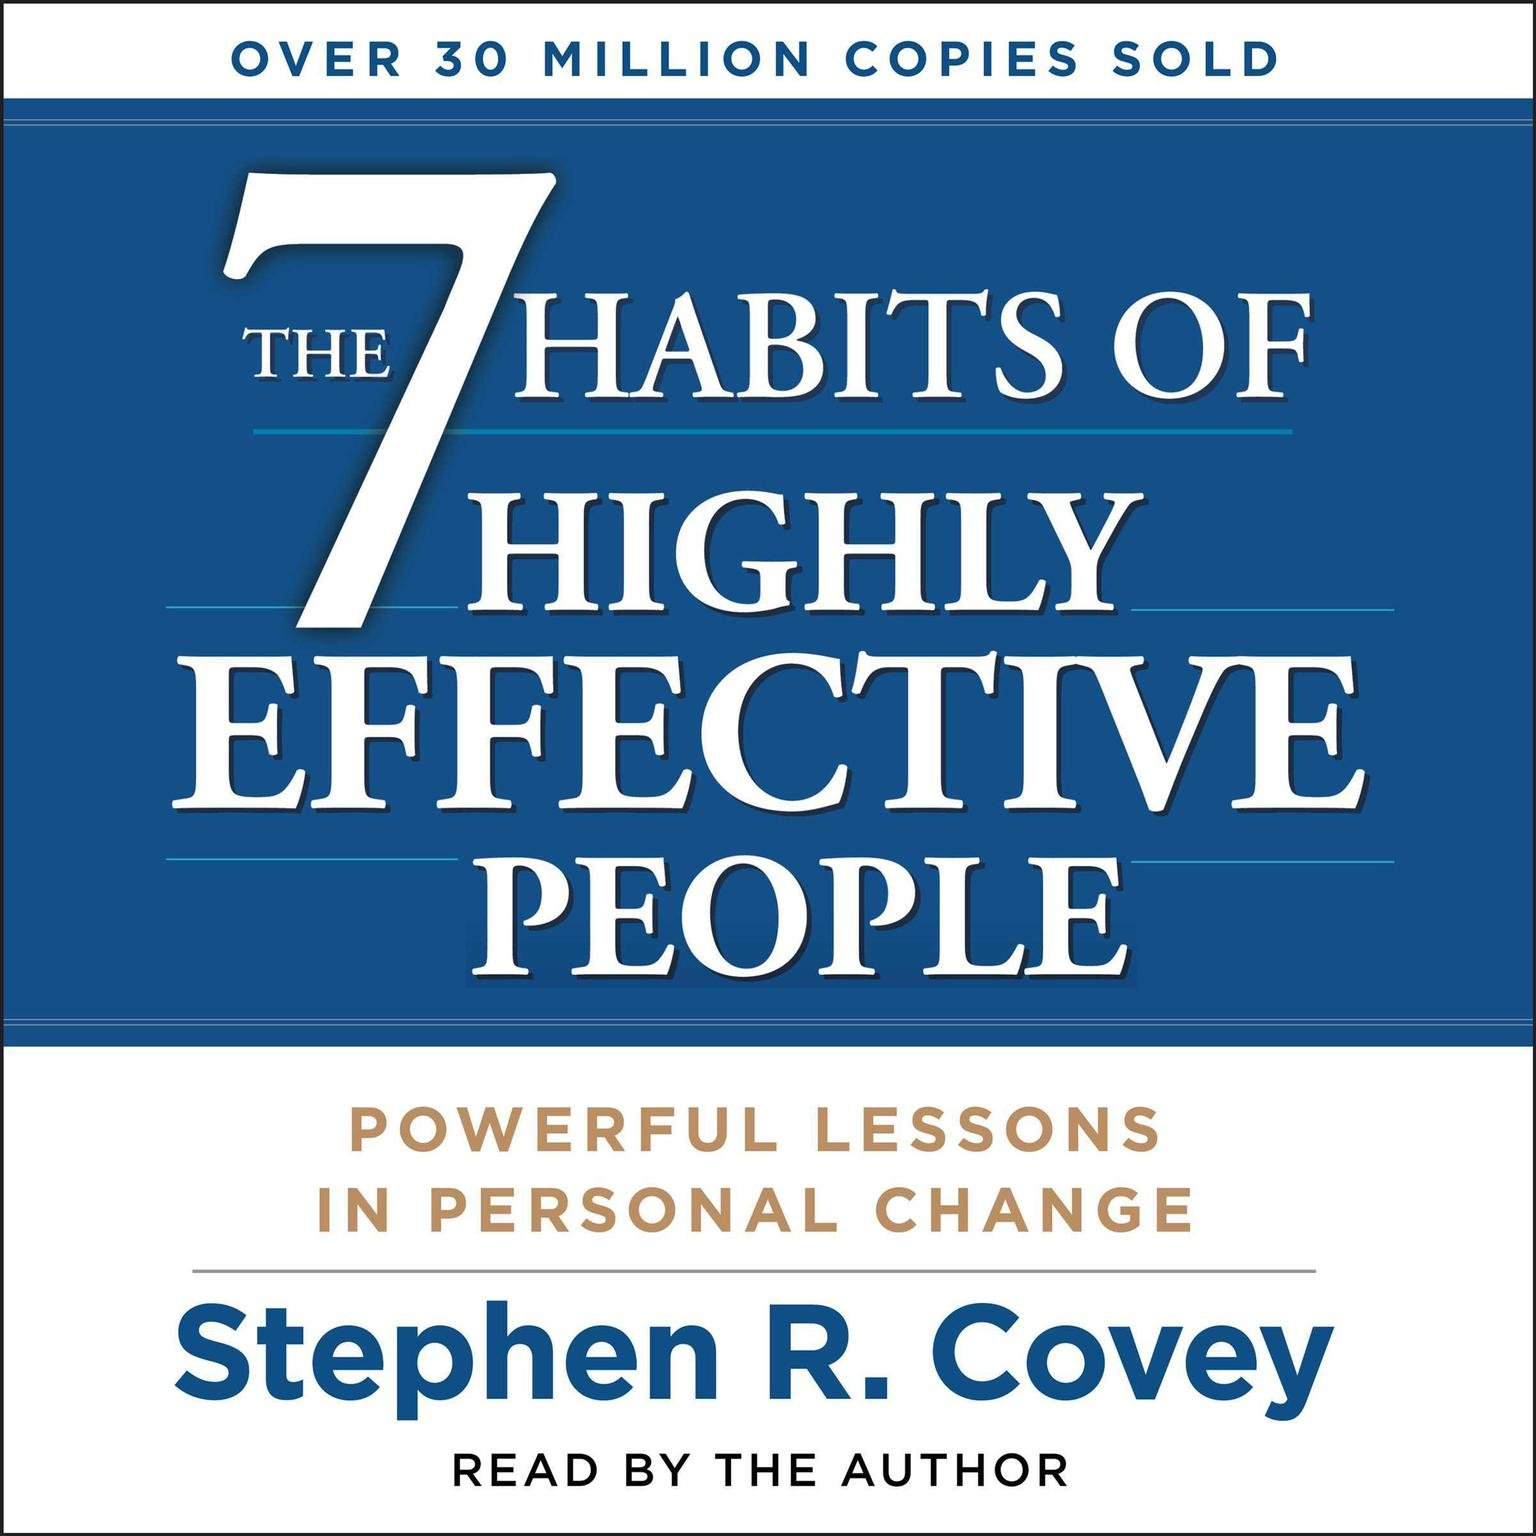 the book 7 habits of highly effective people